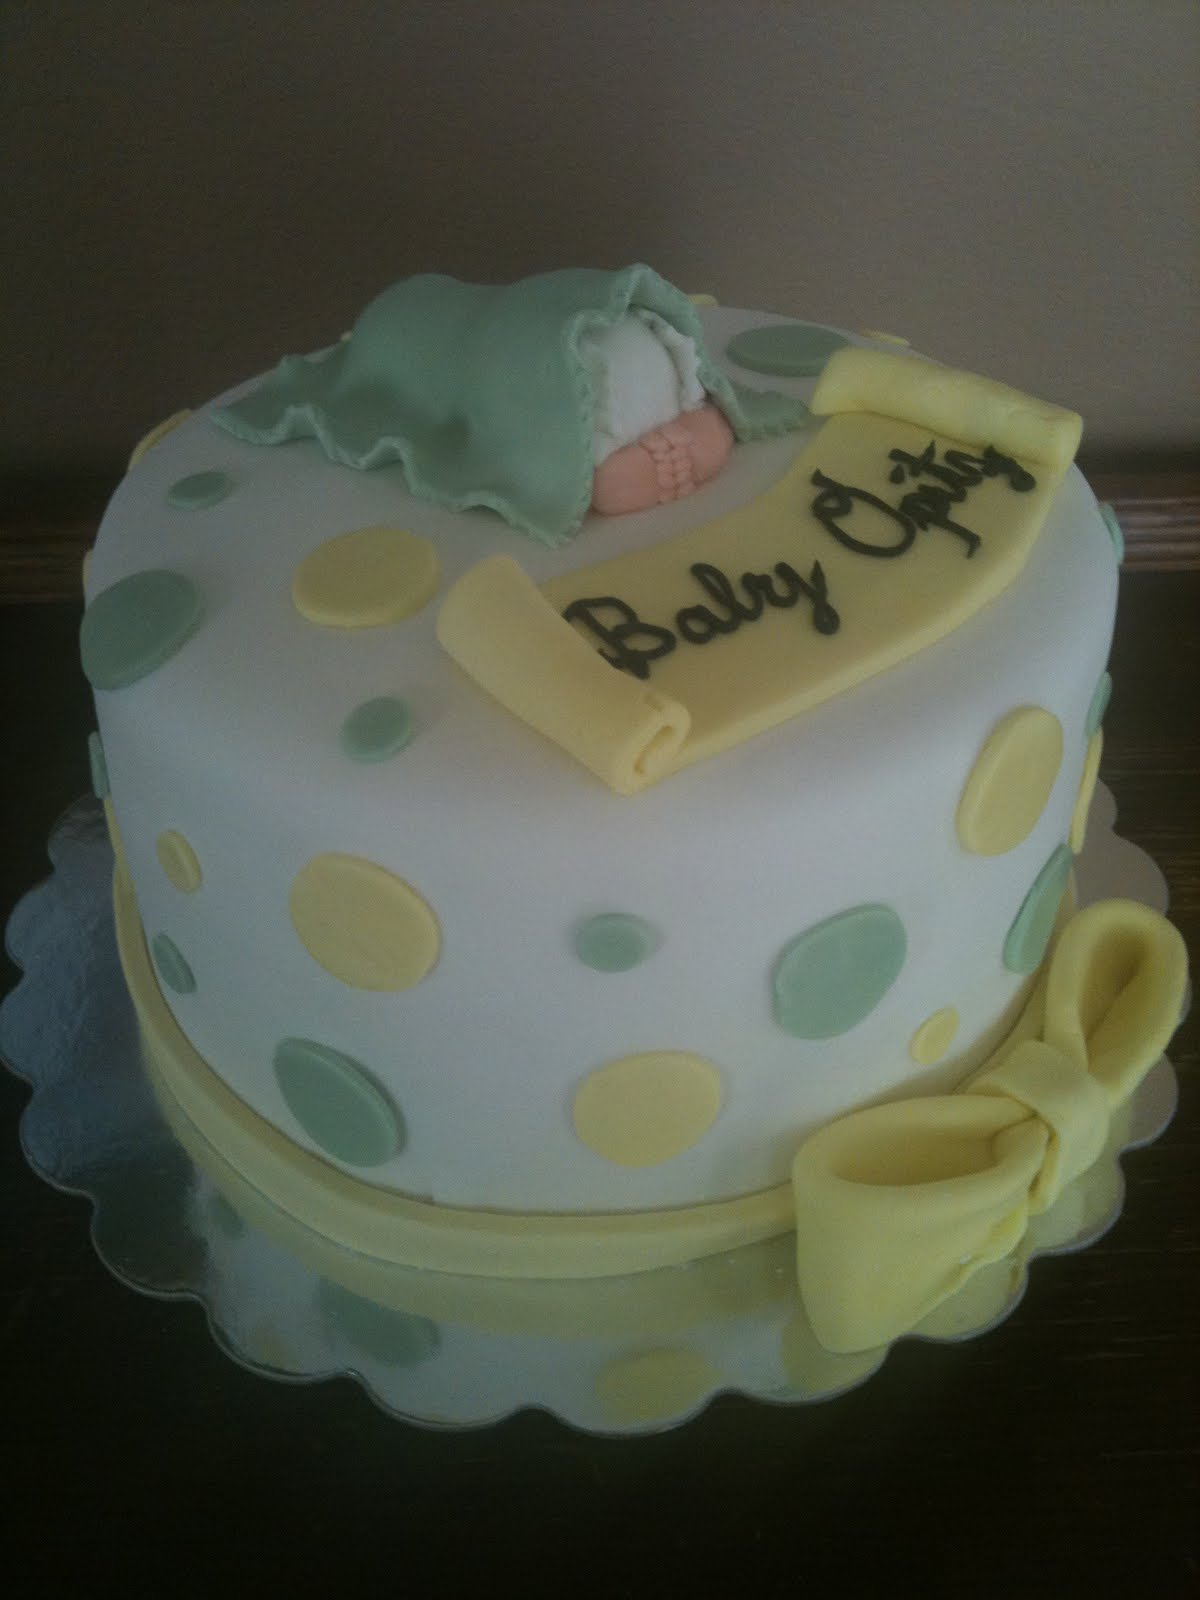 Baby Gift Ideas Unknown Gender : Baby shower cakes cake ideas for unknown gender